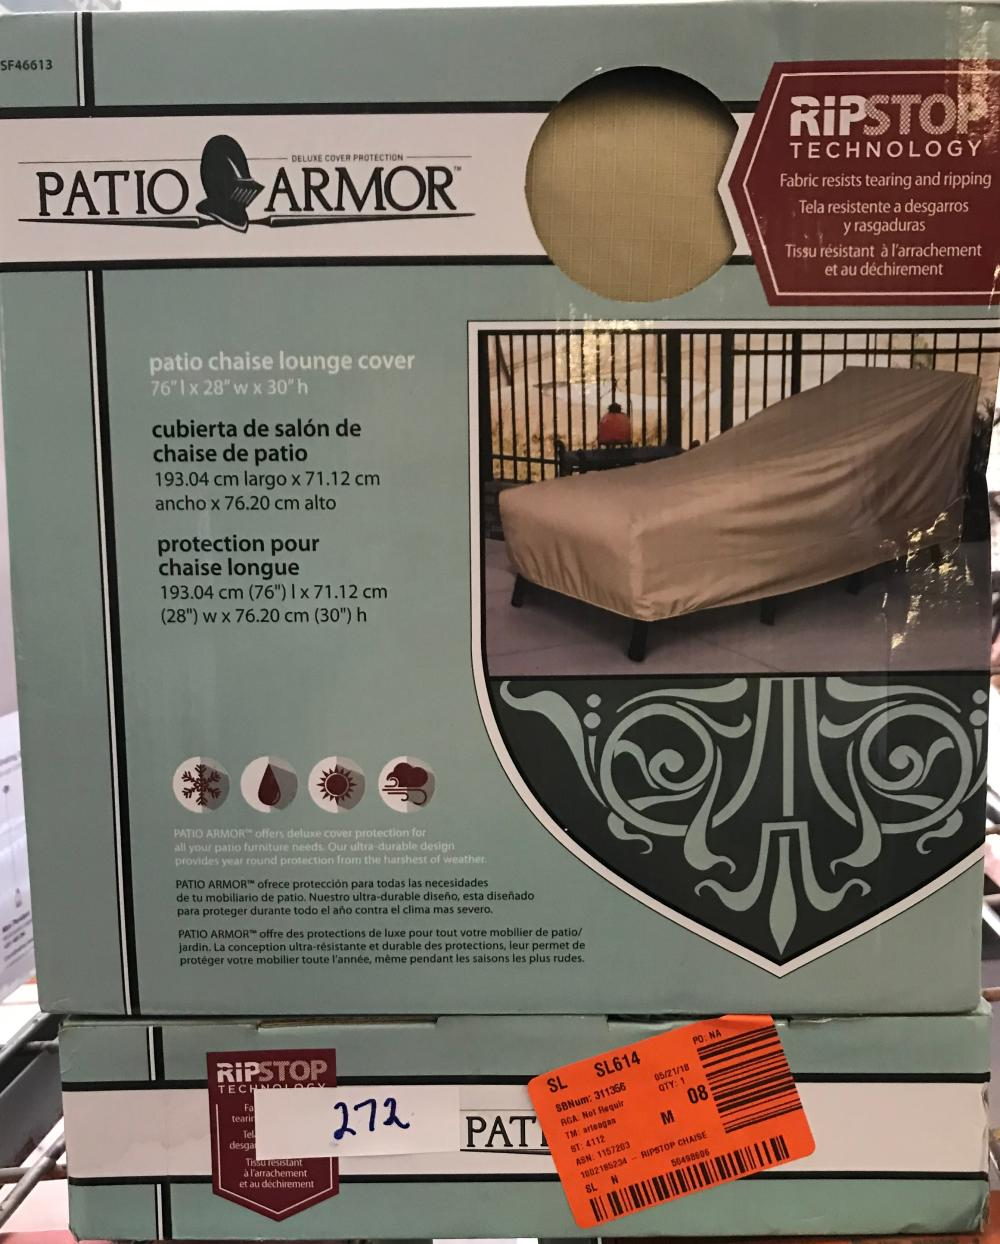 2 Patio Armor Patio Chaise Lounge Cover